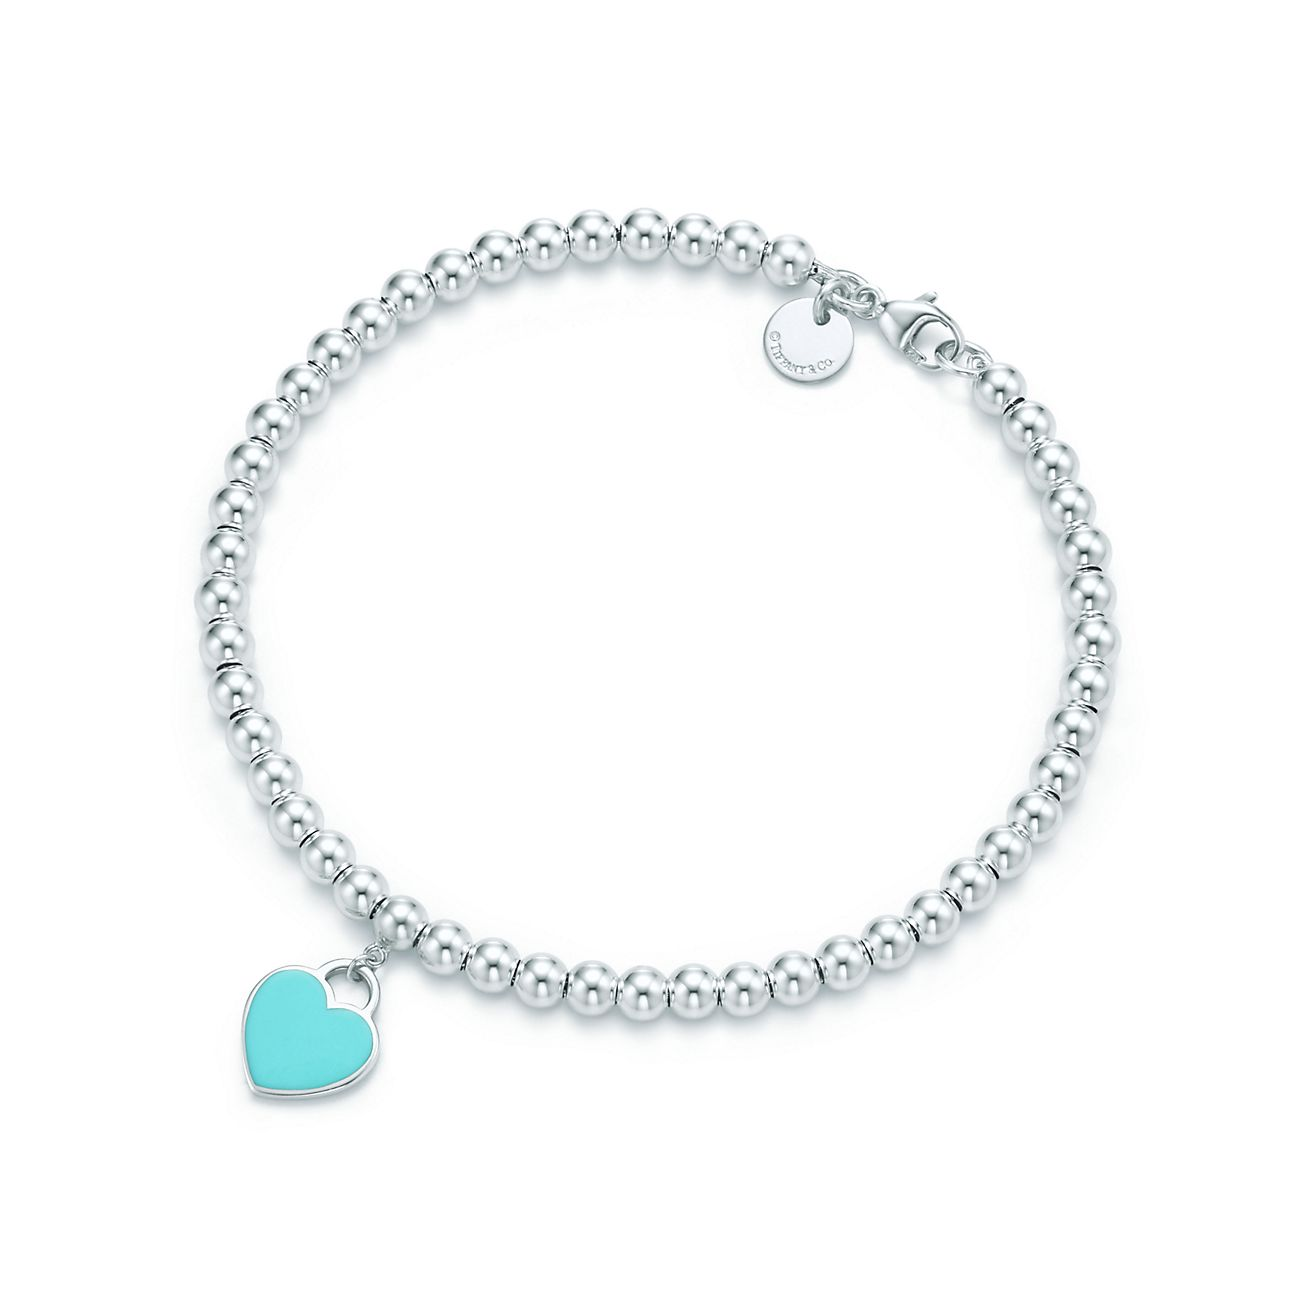 Return to tiffany mini heart tag in sterling silver on a bead return to tiffanybead bracelet negle Gallery